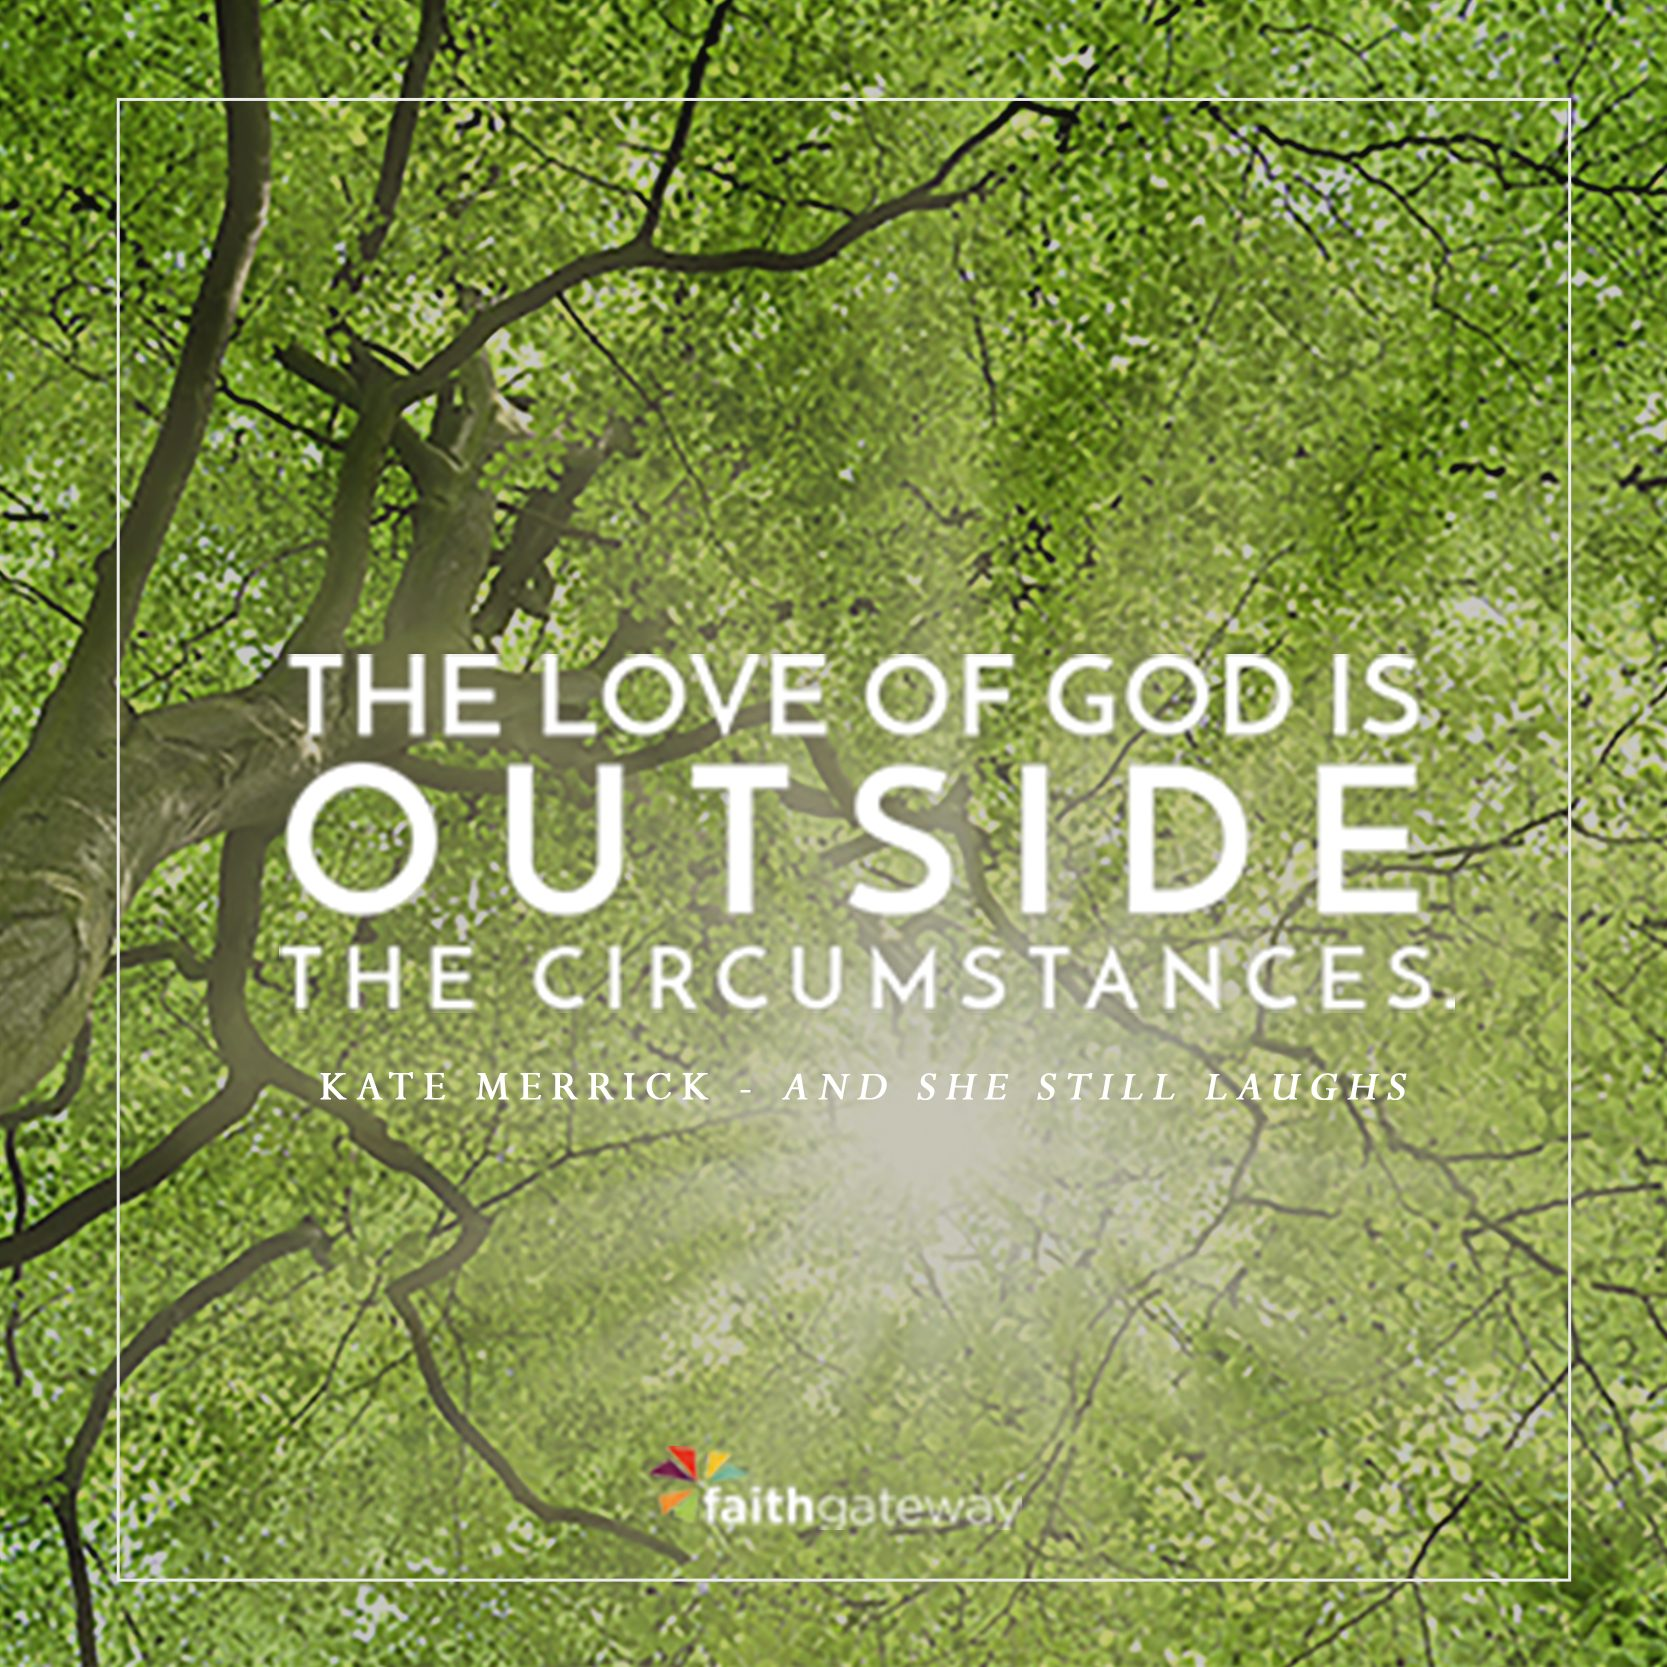 God's love is outside the circumstances